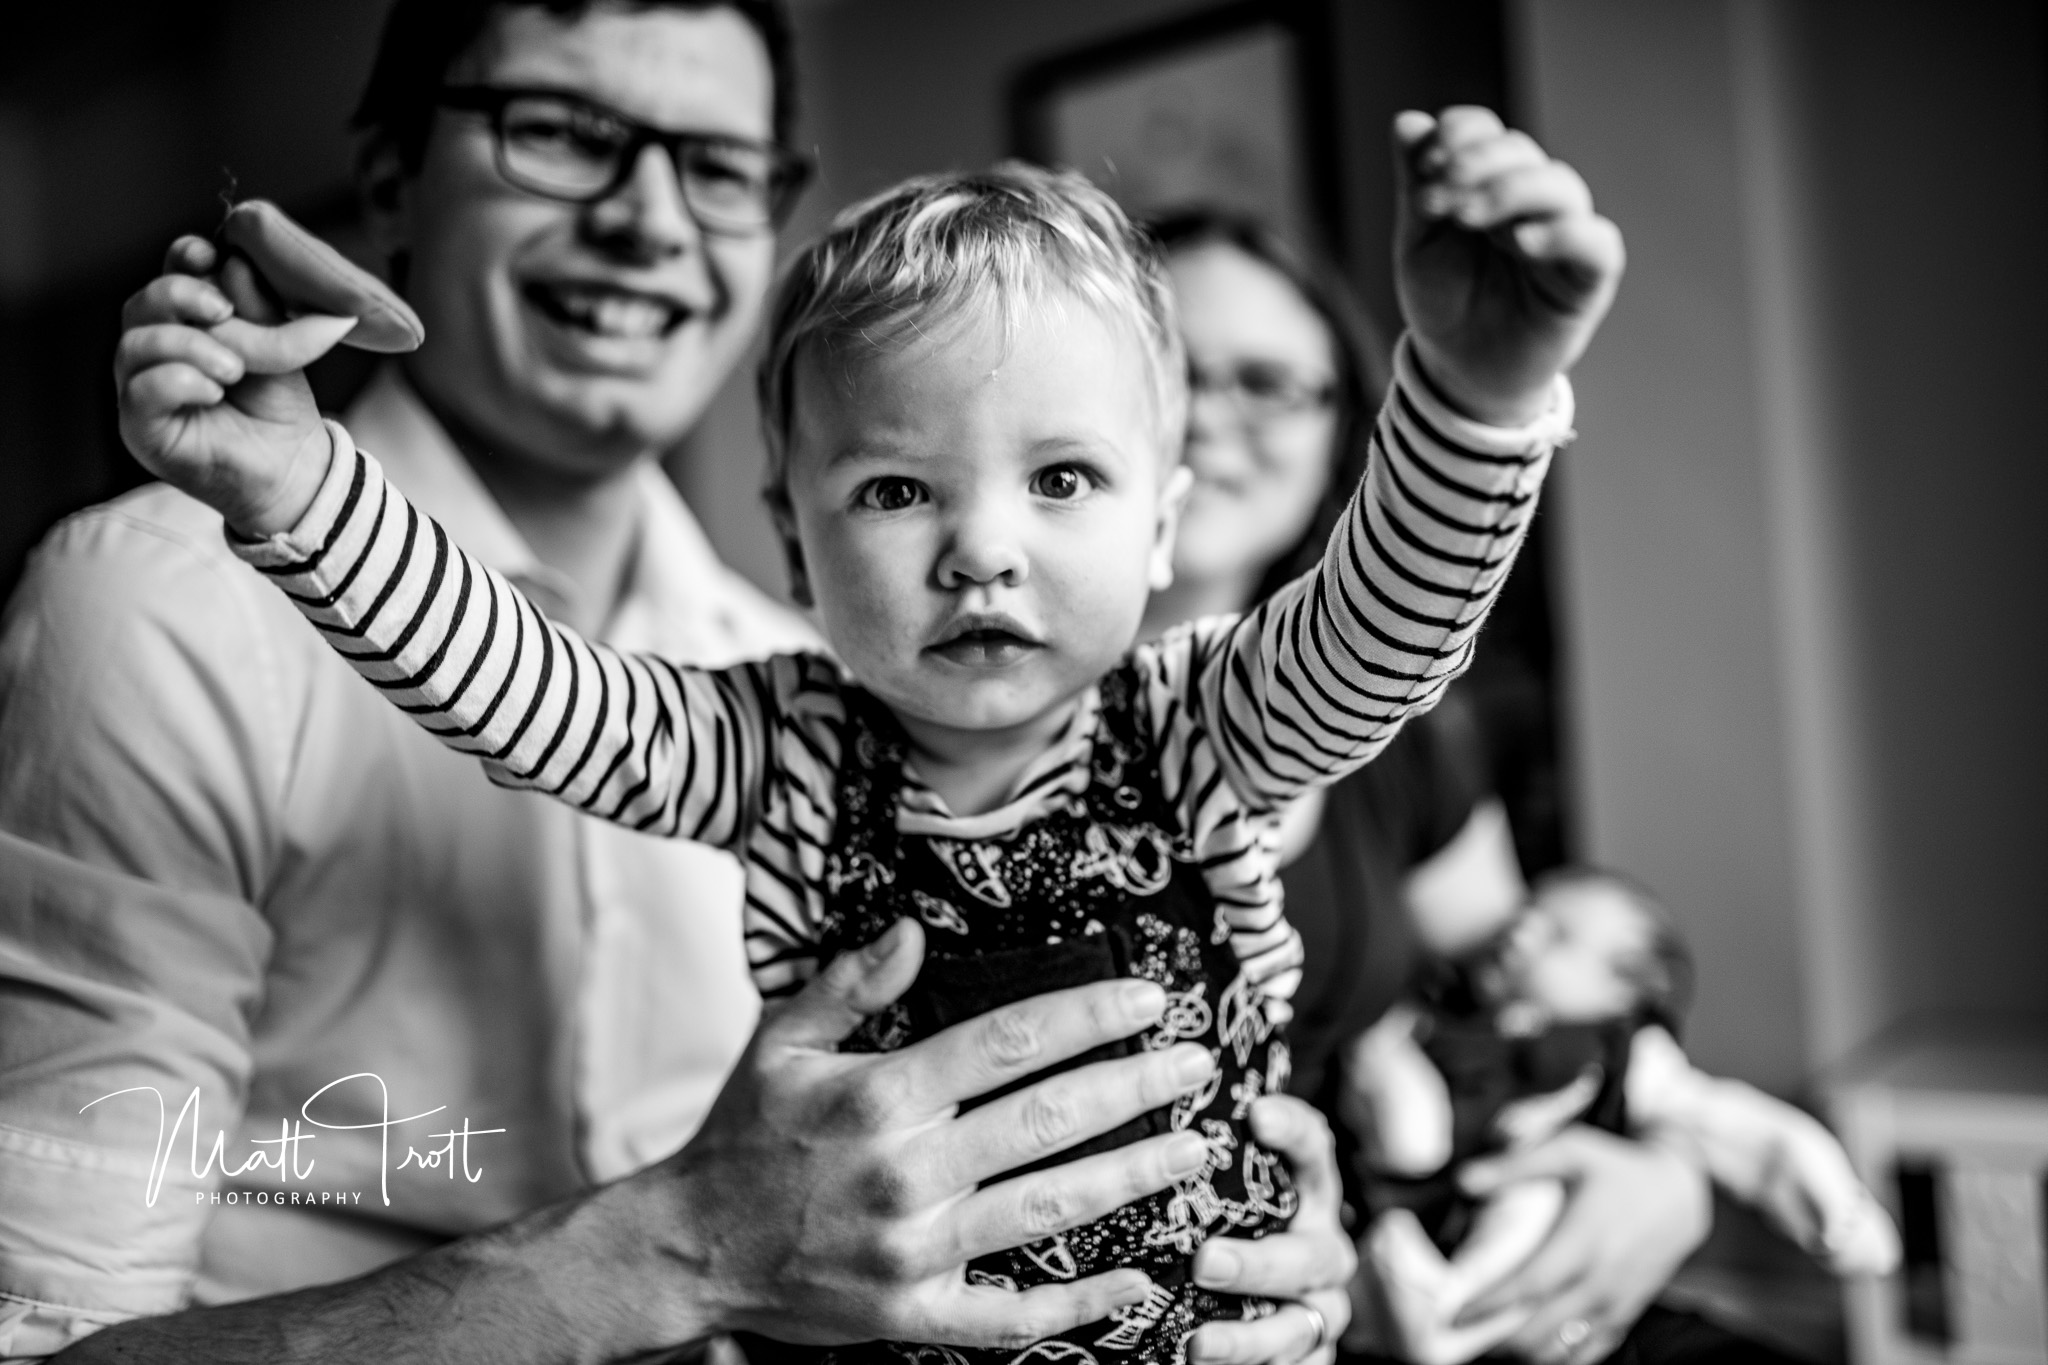 Lifestyle family moments captured in your kent home